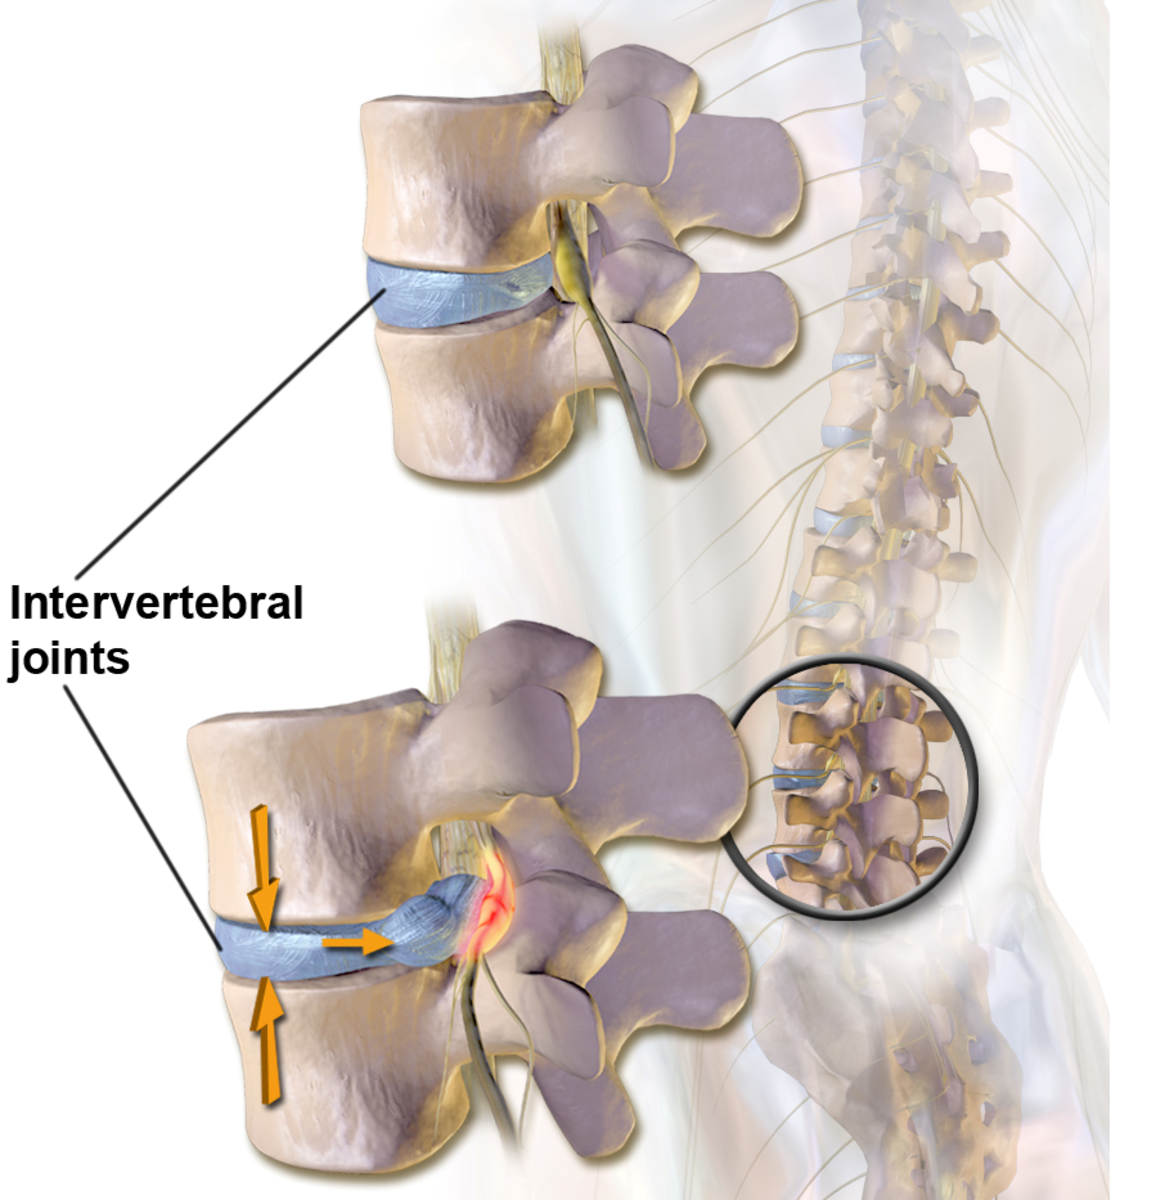 Intervertebral fibrocartilage discs join vertebrae together